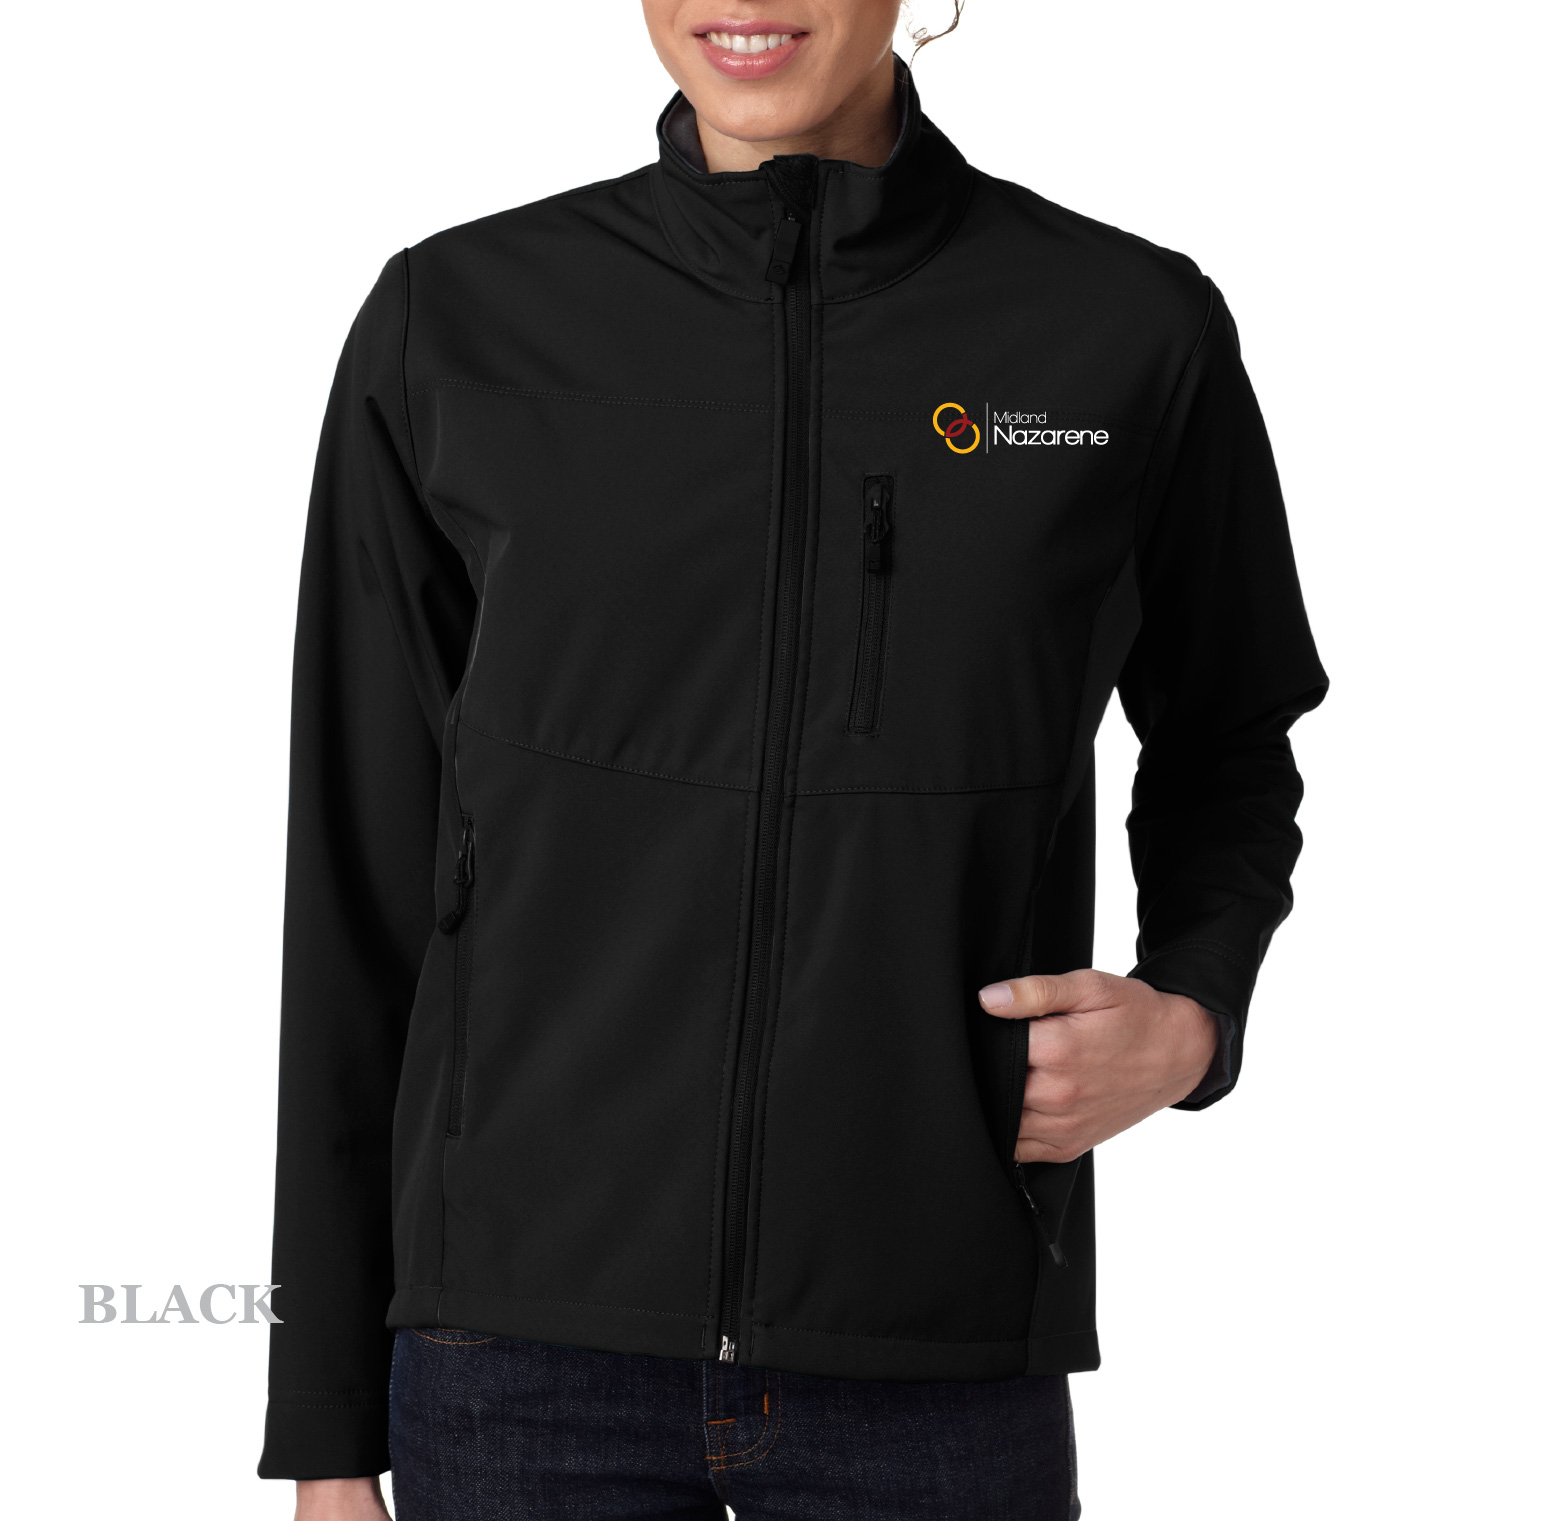 b8144323a Women's Waterproof/Breathable Soft Shell Jacket – Midland Nazarene ...